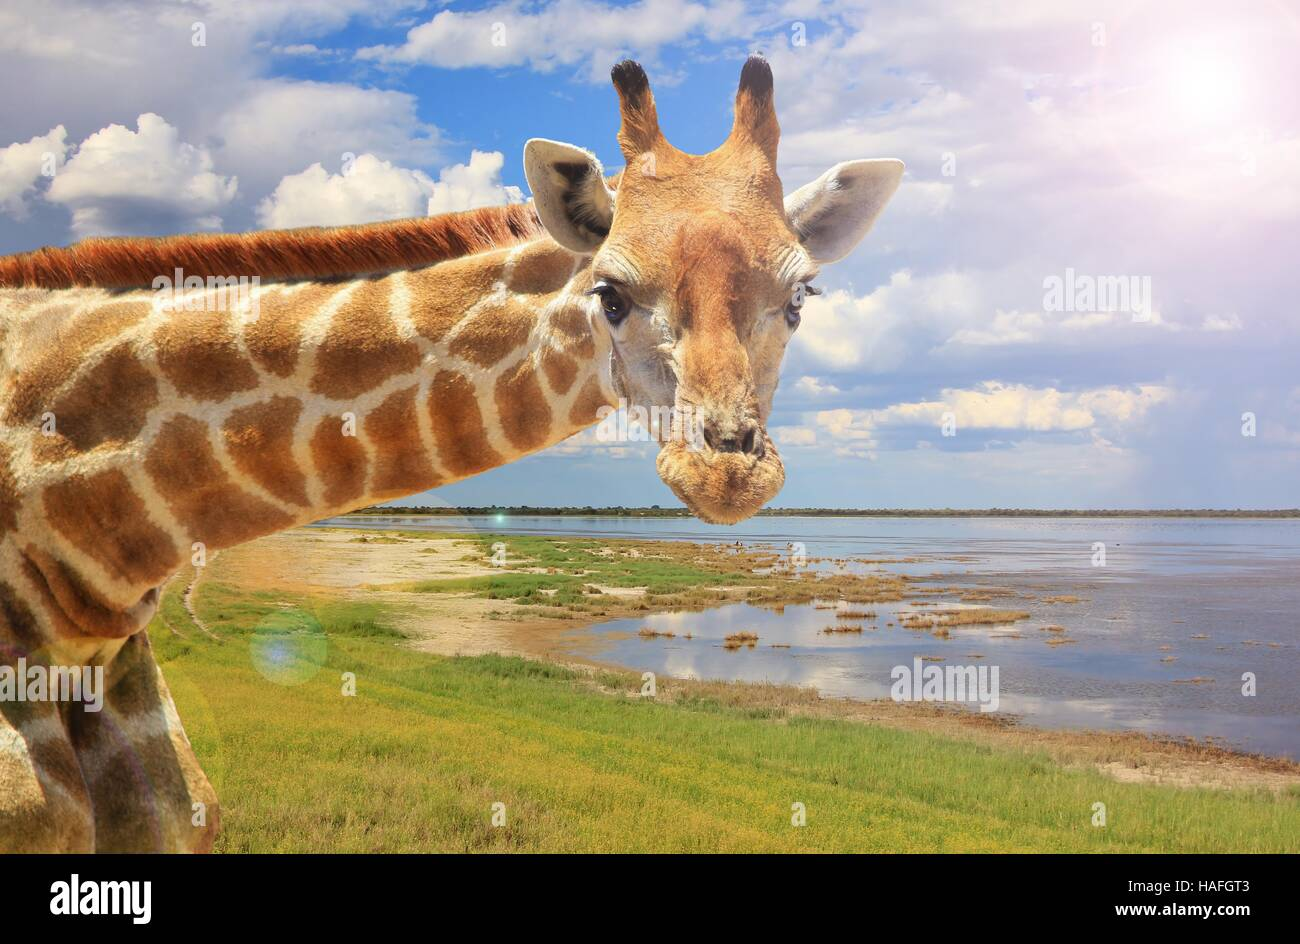 Giraffe - African Wildlife in the Wilds - - Stock Image